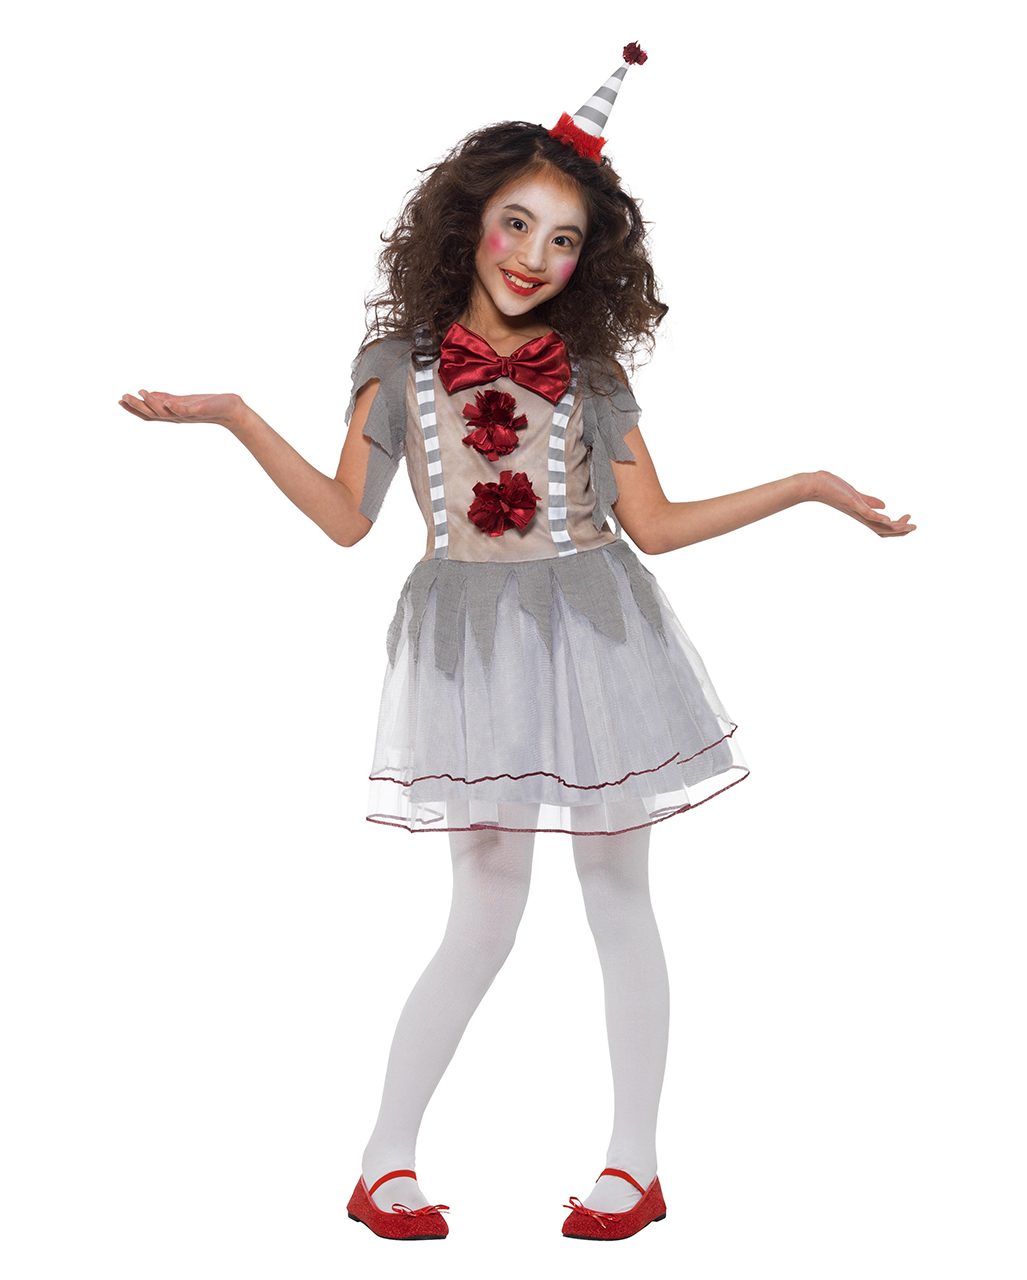 Killer Clown Halloween Costumes For Girls.Vintage Horror Clown Girl Costume